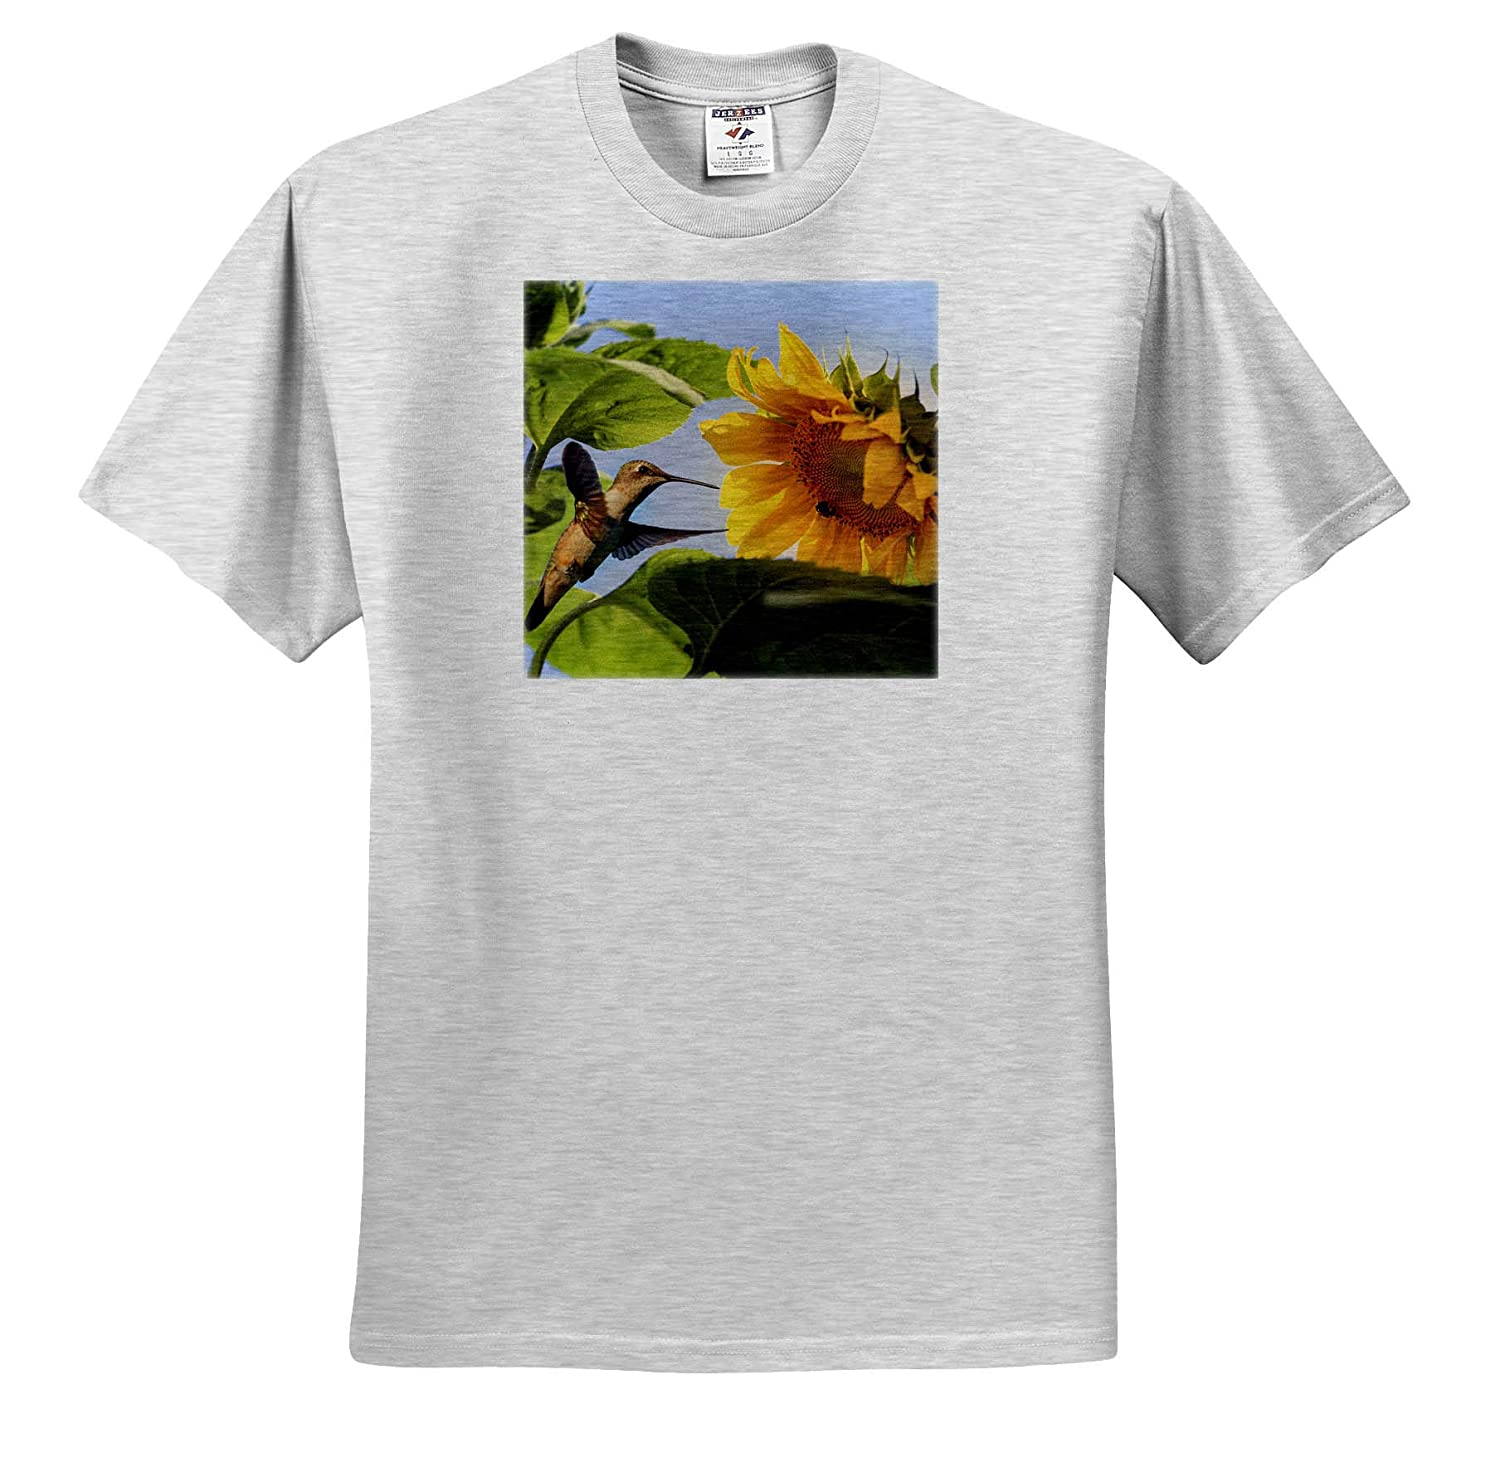 3dRose Stamp City - T-Shirts A Ruby-Throated Hummingbird and Carpenter bee Enjoying a Sunflower Nature